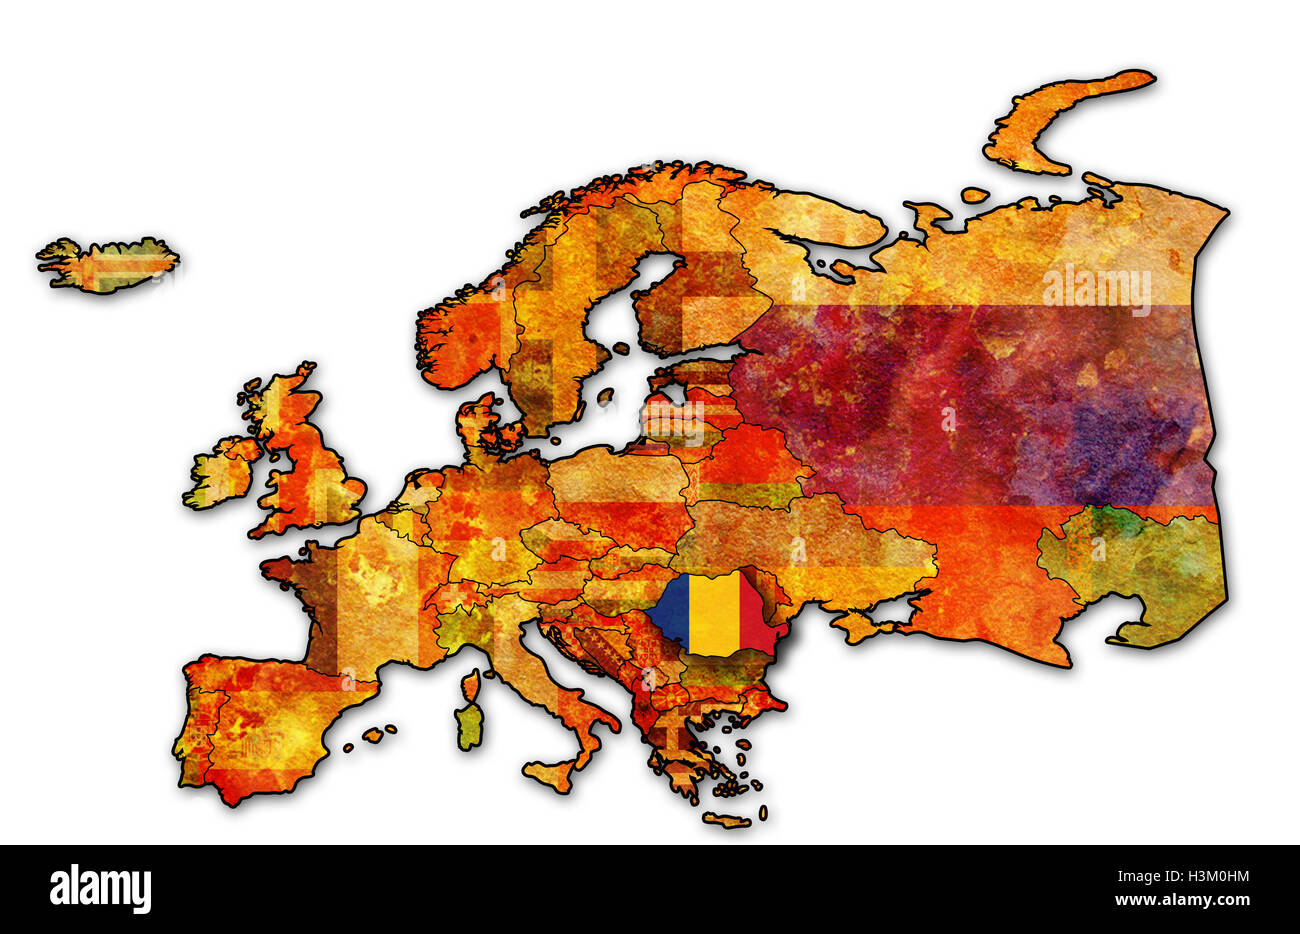 Outline Romania Map Stock Photos & Outline Romania Map Stock Images ...